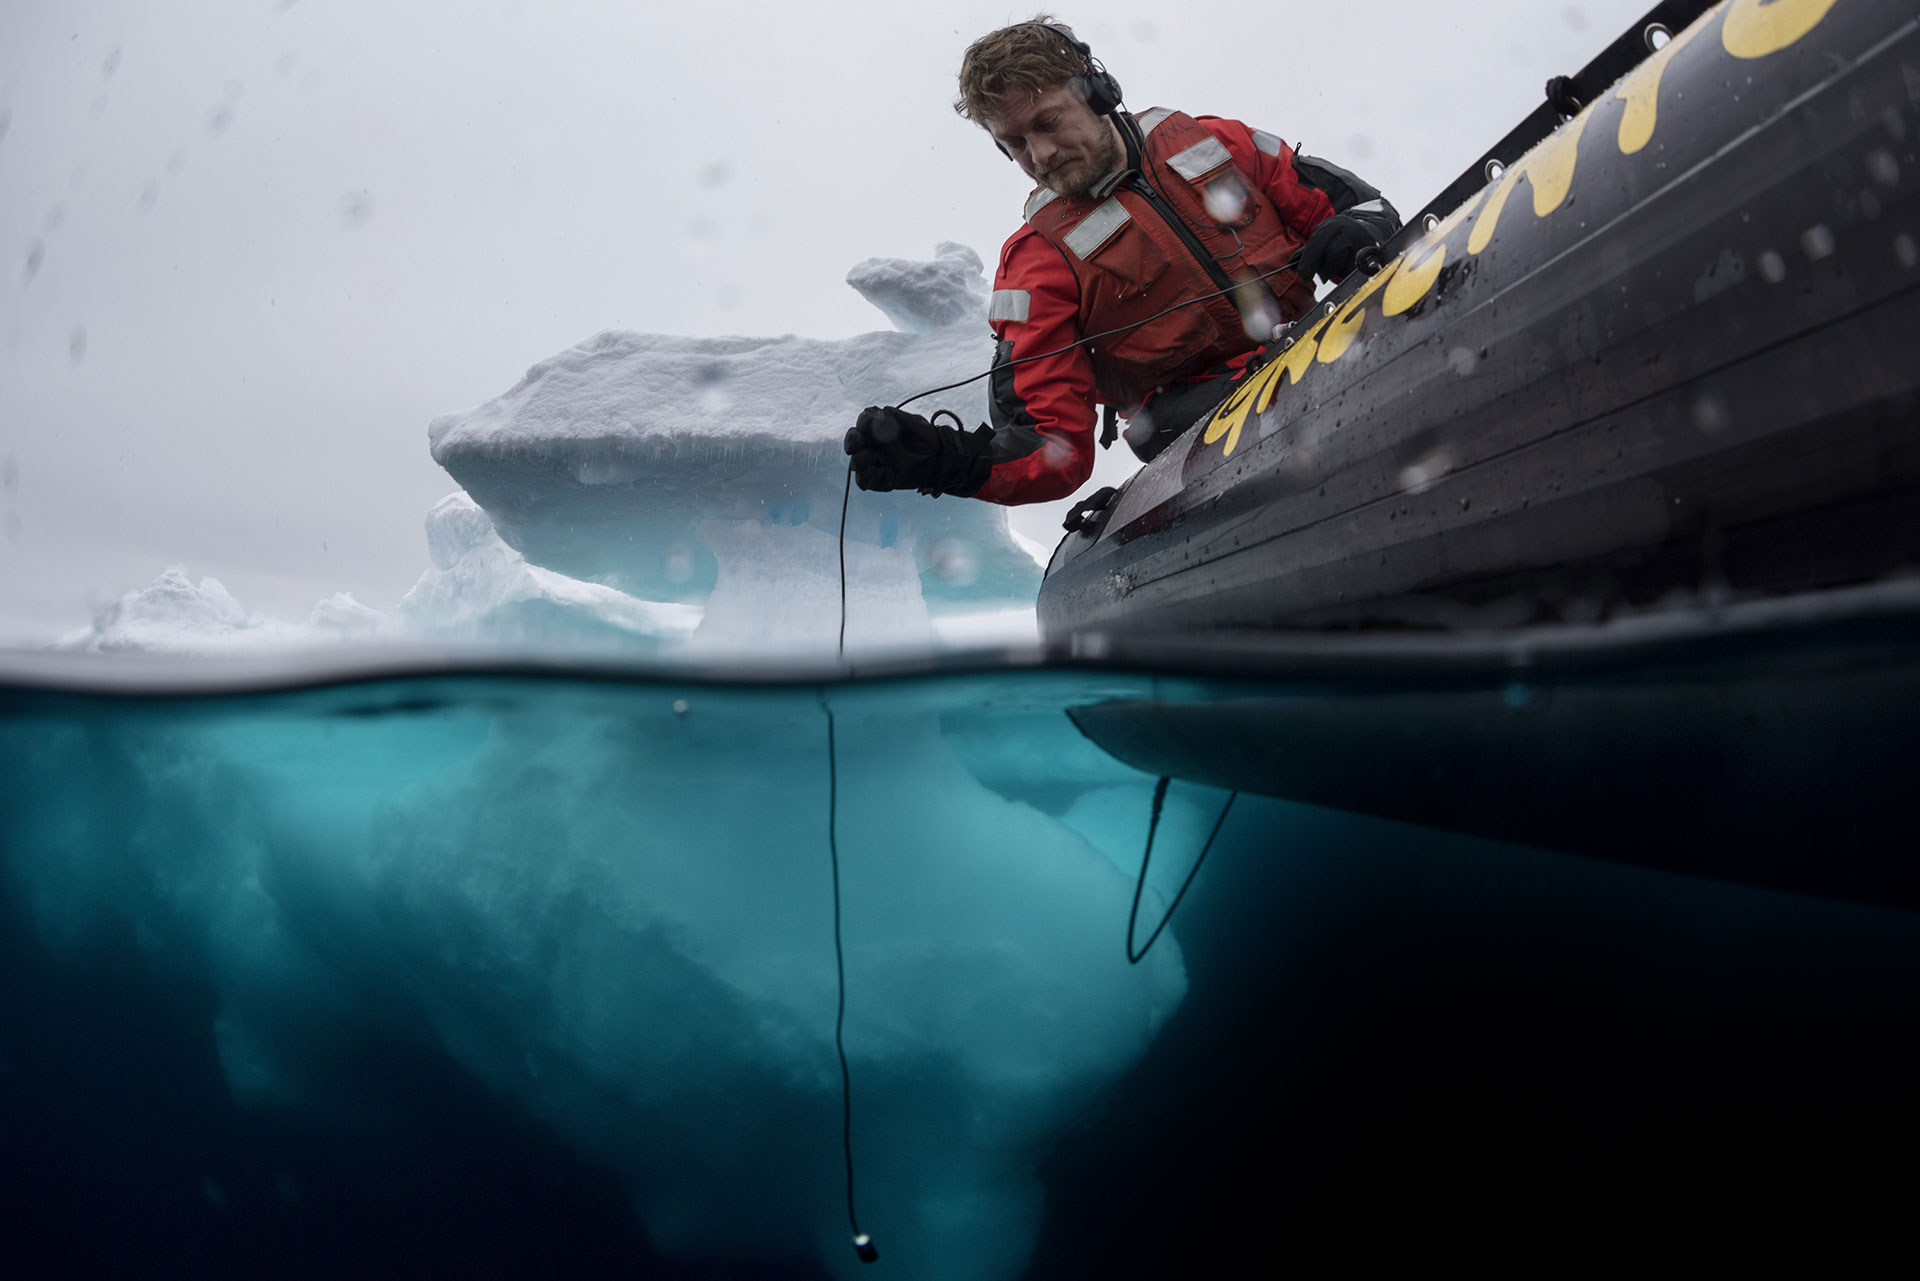 Sune Scheller Monitors Seismic Blasting with Hydrophone. © Christian Åslund / Greenpeace